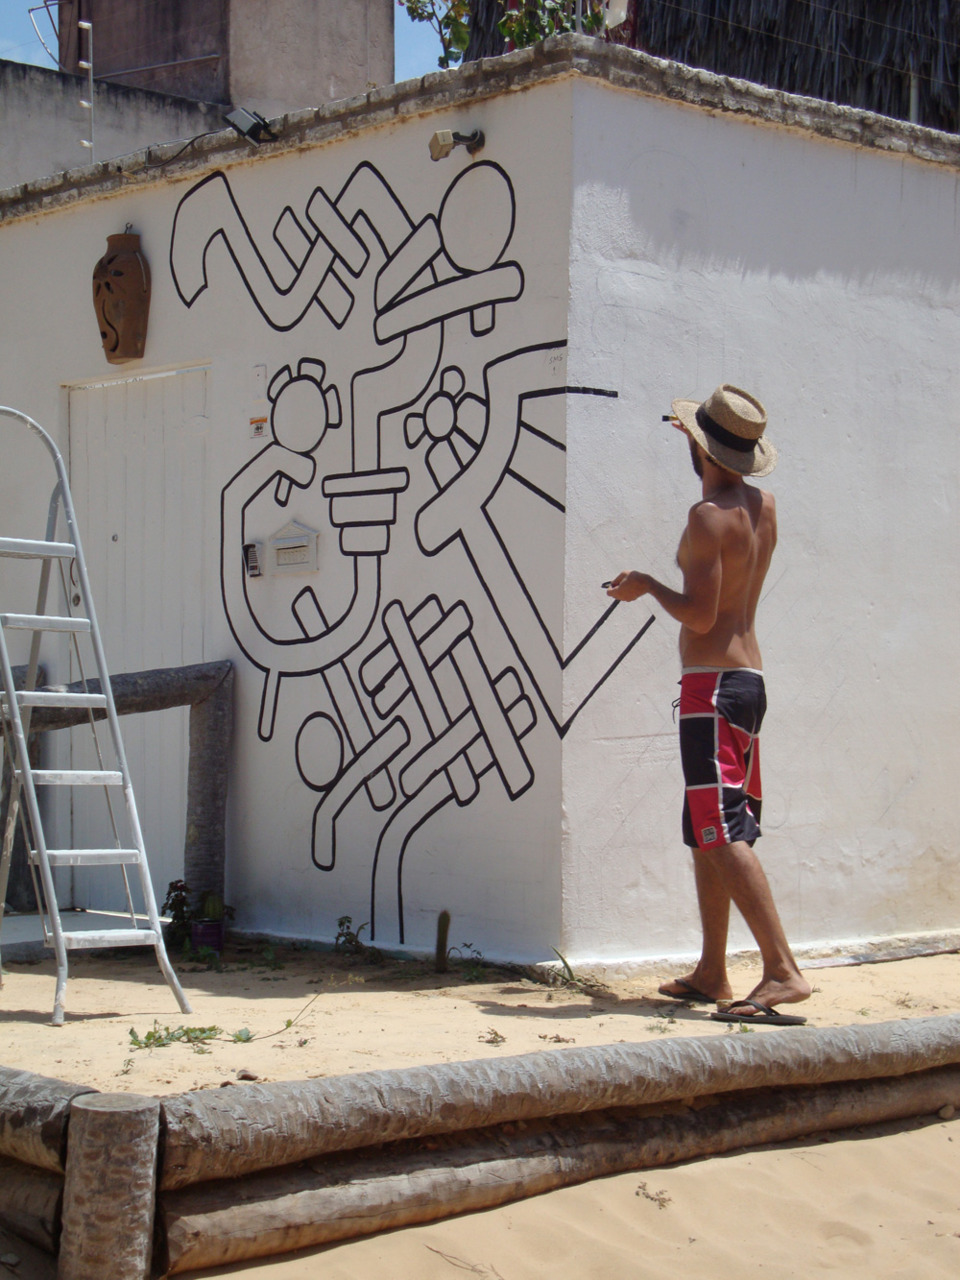 Mural in progress in Jericoacoara. If you're in town, stop by Labirinto Residence.